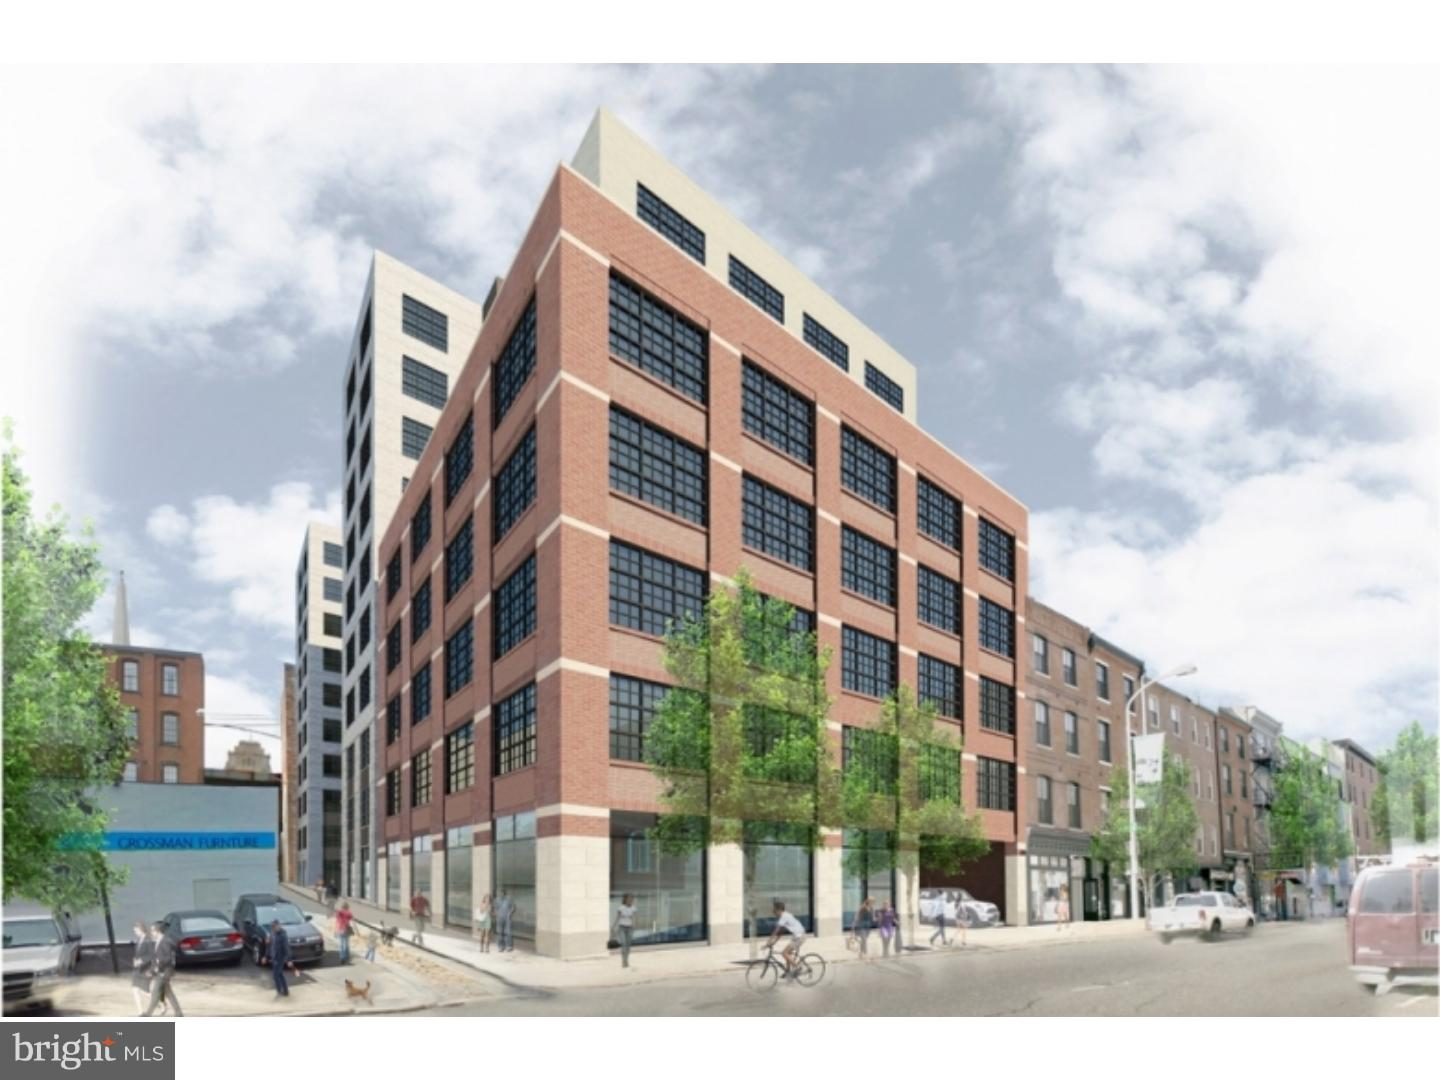 ONE MONTH FREE, on a 13 month lease, and WAIVED APPLICATION FEES for a limited time! 218 Arch Street: OLD CITY'S NEWEST LUXURY residential high rise, is a must see! ! ! ! ! ! ! ! ! ! You can be the FIRST ONE, to occupy this  fantastic South facing, 1 bedroom apartment, with  a PRIVATE TERRACE! Gorgeous hardwood floors, ALL OPEN KITCHEN with granite countertops, stainless steel appliances, and breakfast bar. Your bedroom is very SPACIOUS and GRACIOUS, boasting, great closet space, and very large tile and marble bath. 218 Arch is filled with AMENITIES: ROOF top lounge,with FANTASTIC VIEWS of the BEN FRANKLIN bridge and Center City, PRIVATE resident courtyard, GYM,  PELATON room, LOUNGE,with flat screen TVs, billiards, business center, and GARAGE parking for additional cost! ! ! Luxury and Value in the heart of OLD CITY! ! ! ! ! ! ! ! ! ! ! ! ! Walking score 110! Photo's are of model unit.